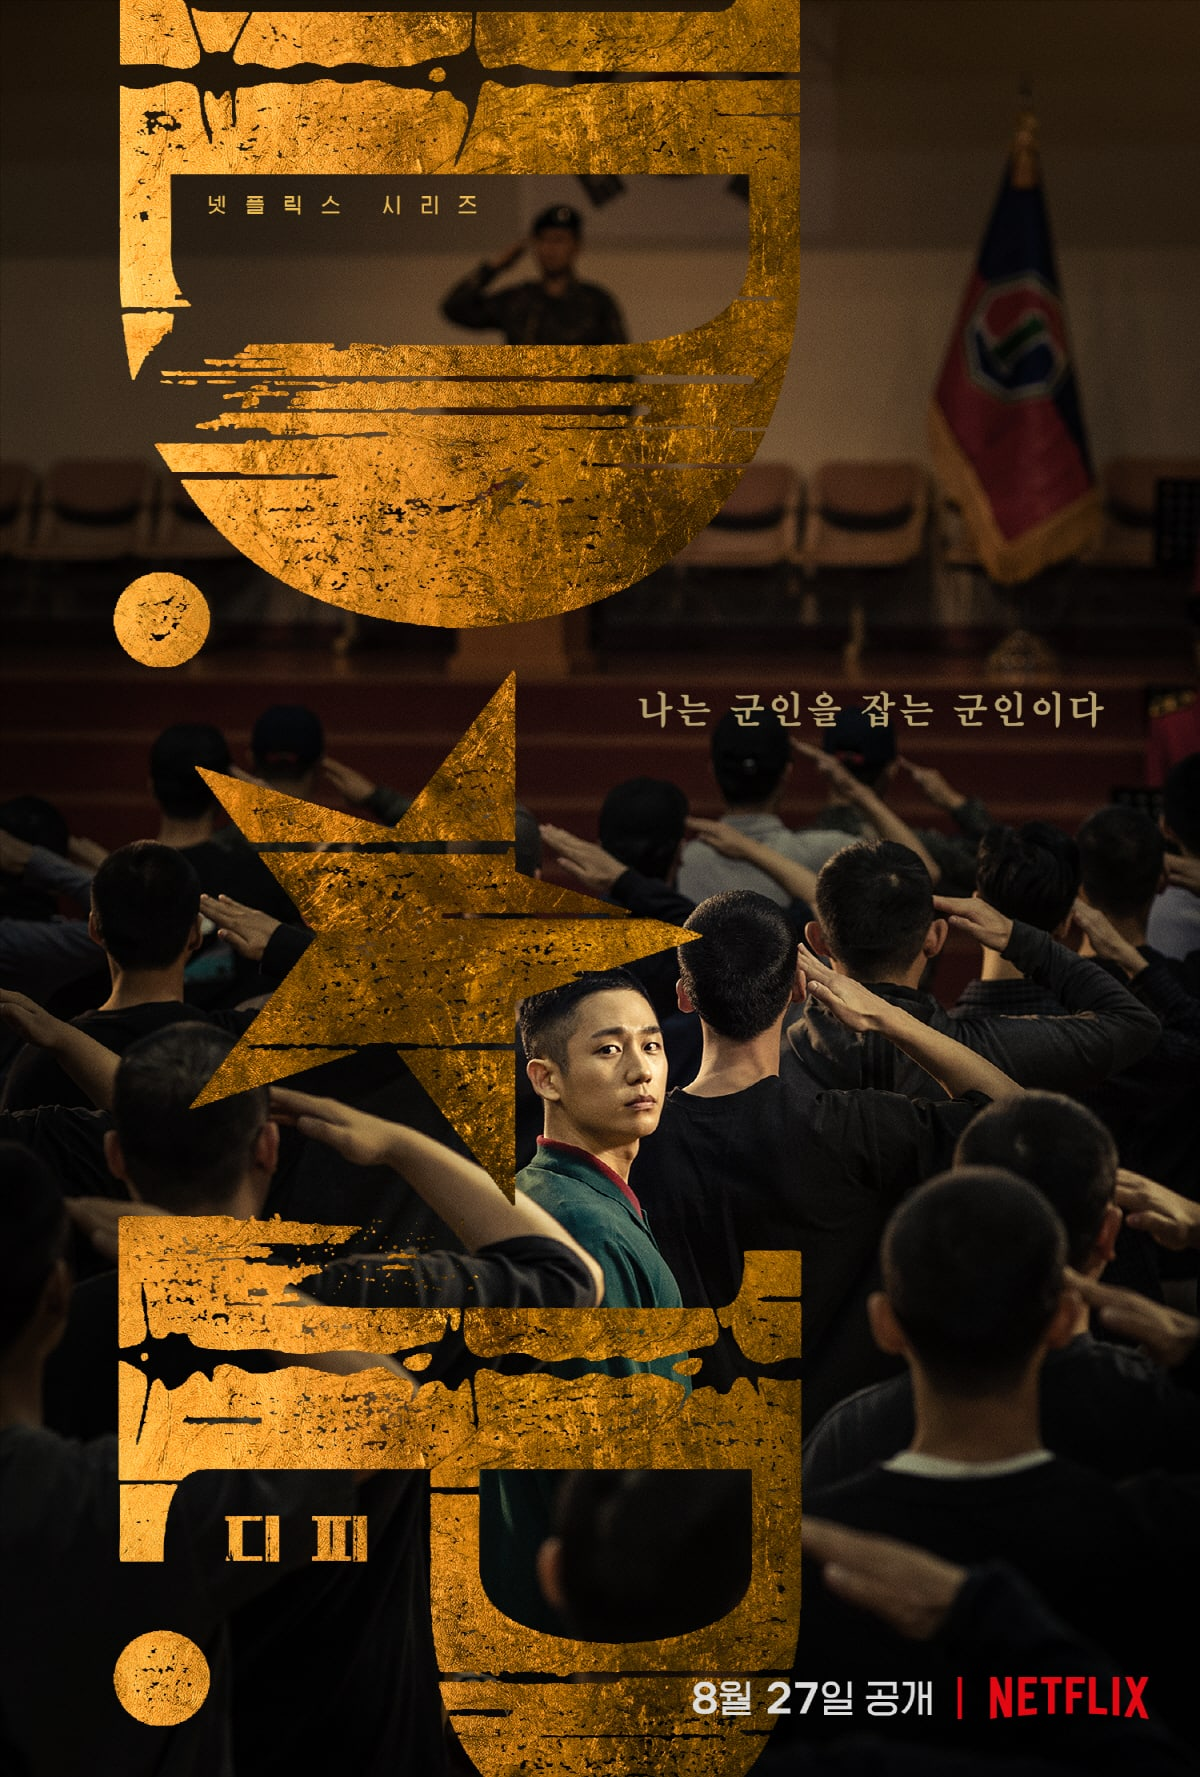 """Jung Hae In's New Netflix Drama """"D.P."""" Releases on August 27th"""